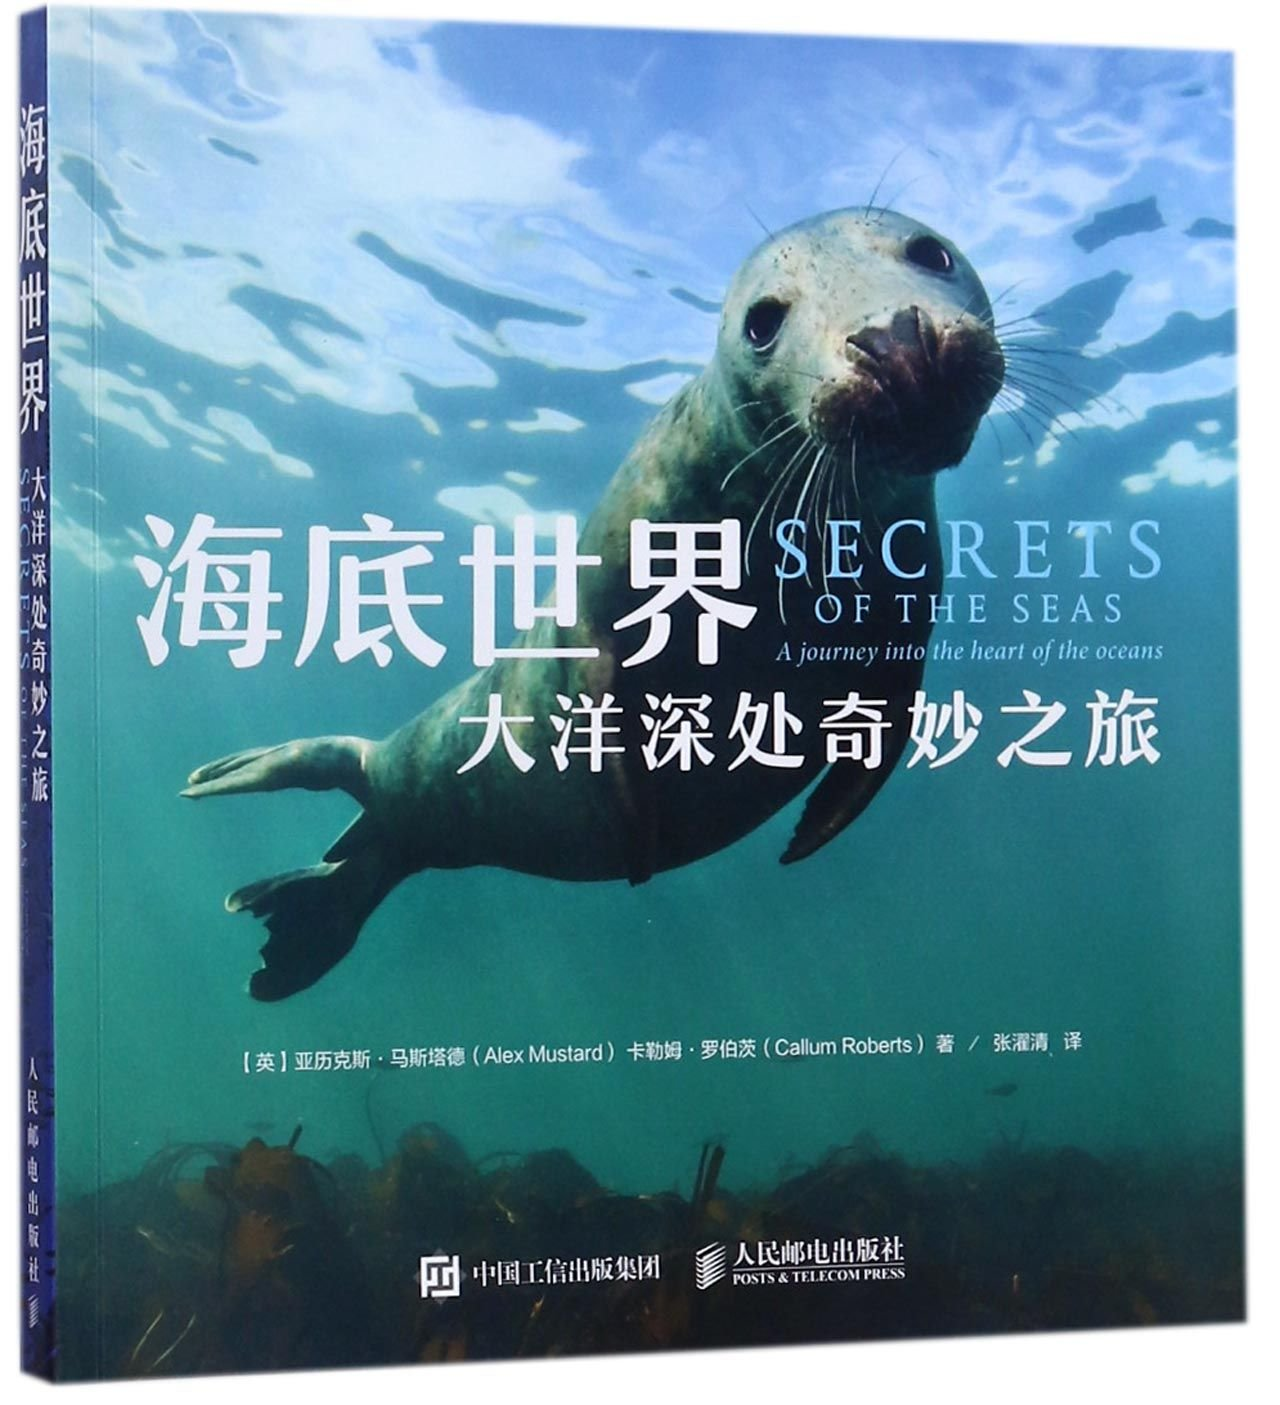 Secrets of the Seas: A journey into the heart of the oceans (Chinese Edition) PDF